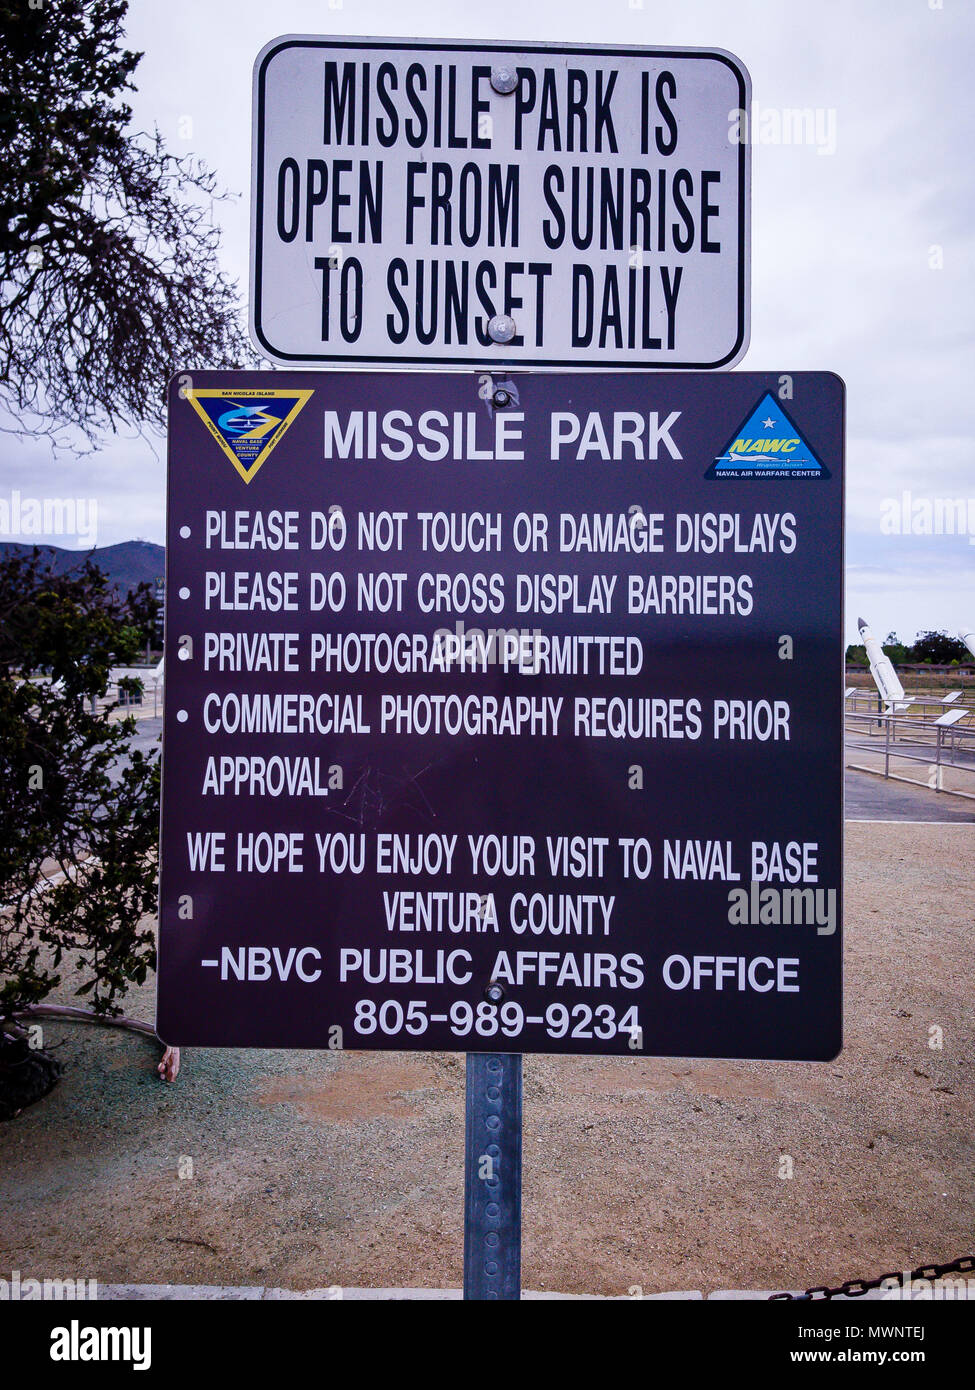 Stock Photo - Point Mugu Missile Park, Port Hueneme, California, United States  © Hugh Peterswald/Alamy - Stock Image